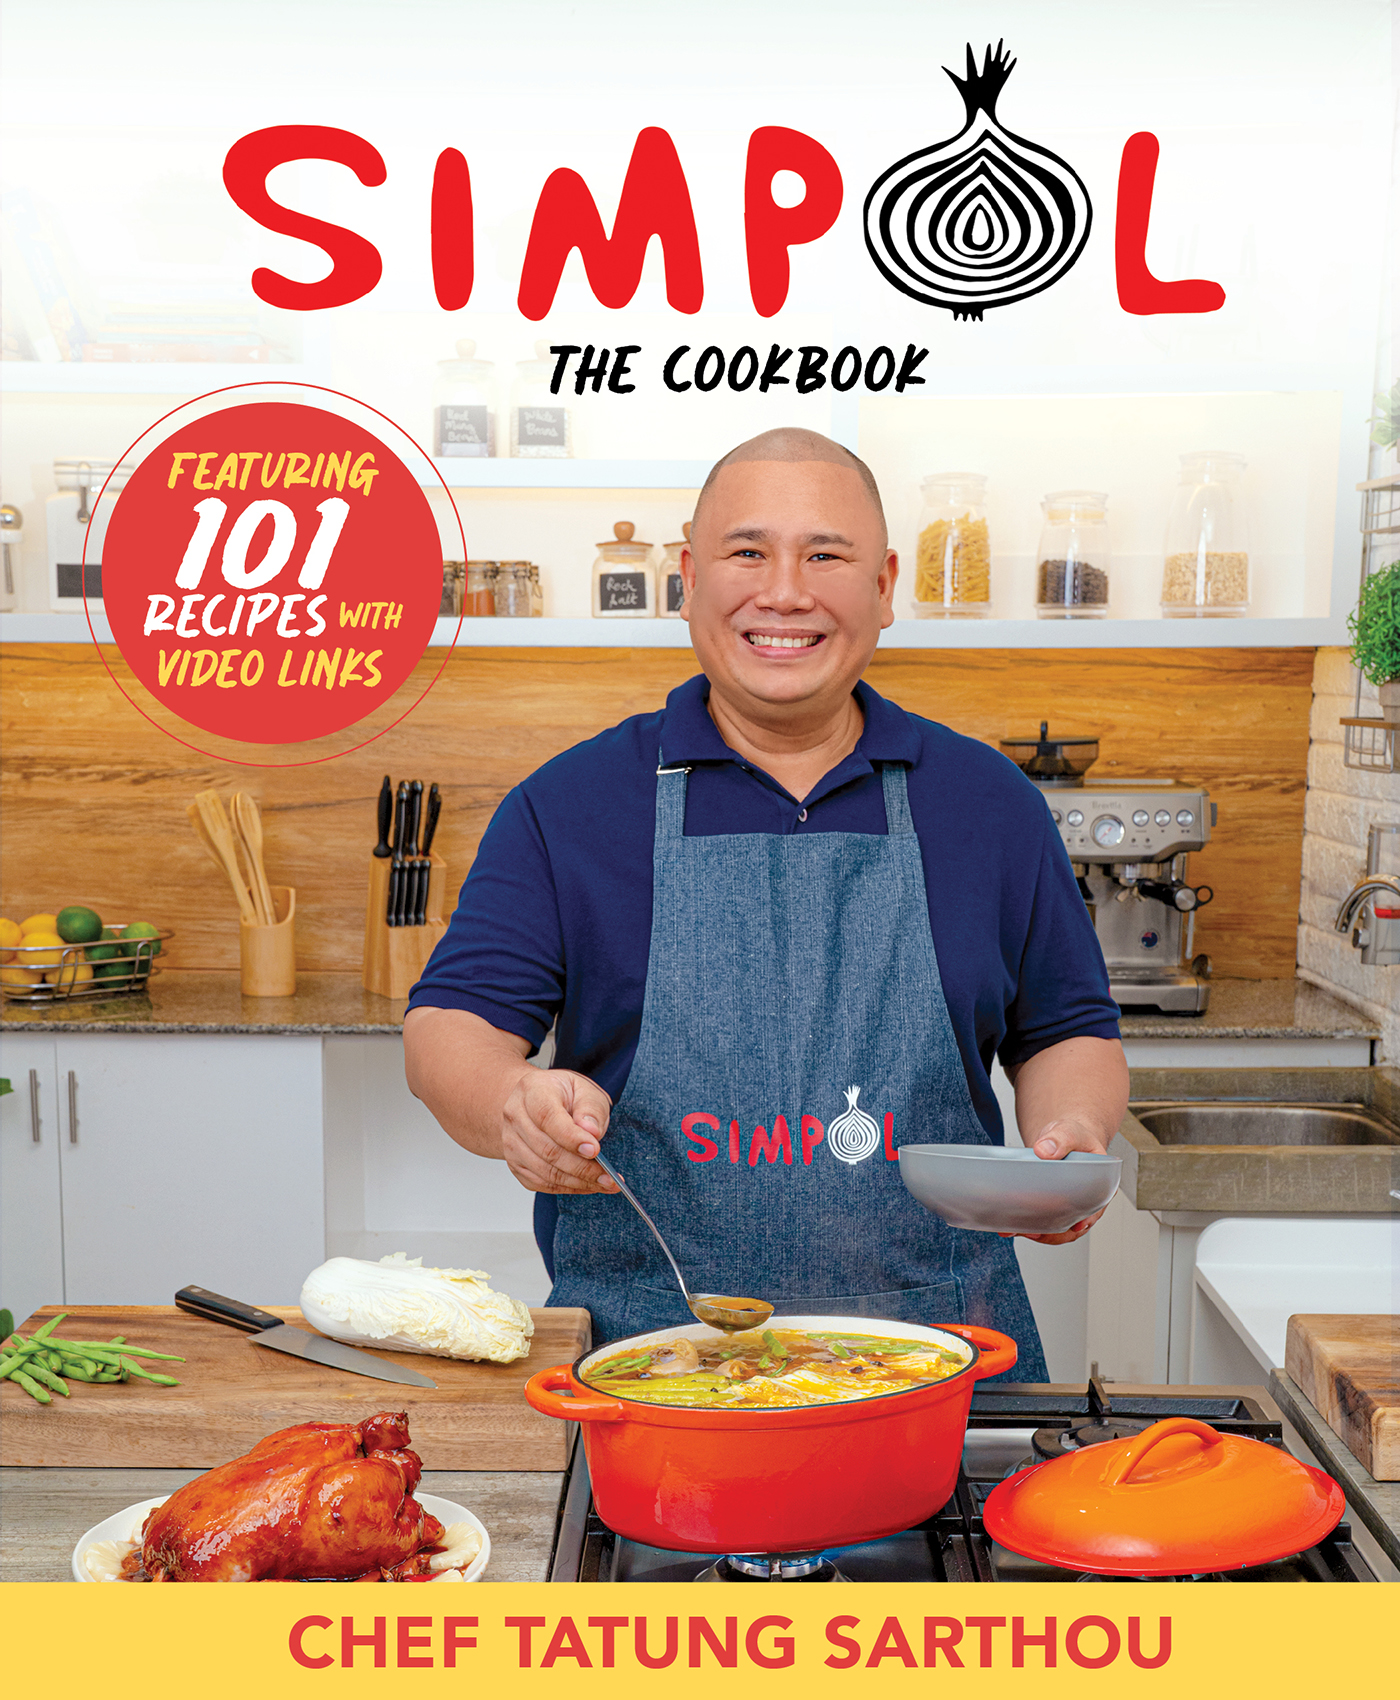 Chef Tatung Sarthou unveils Simpol the Cookbook with 101 recipes collaboration with NutriAsia